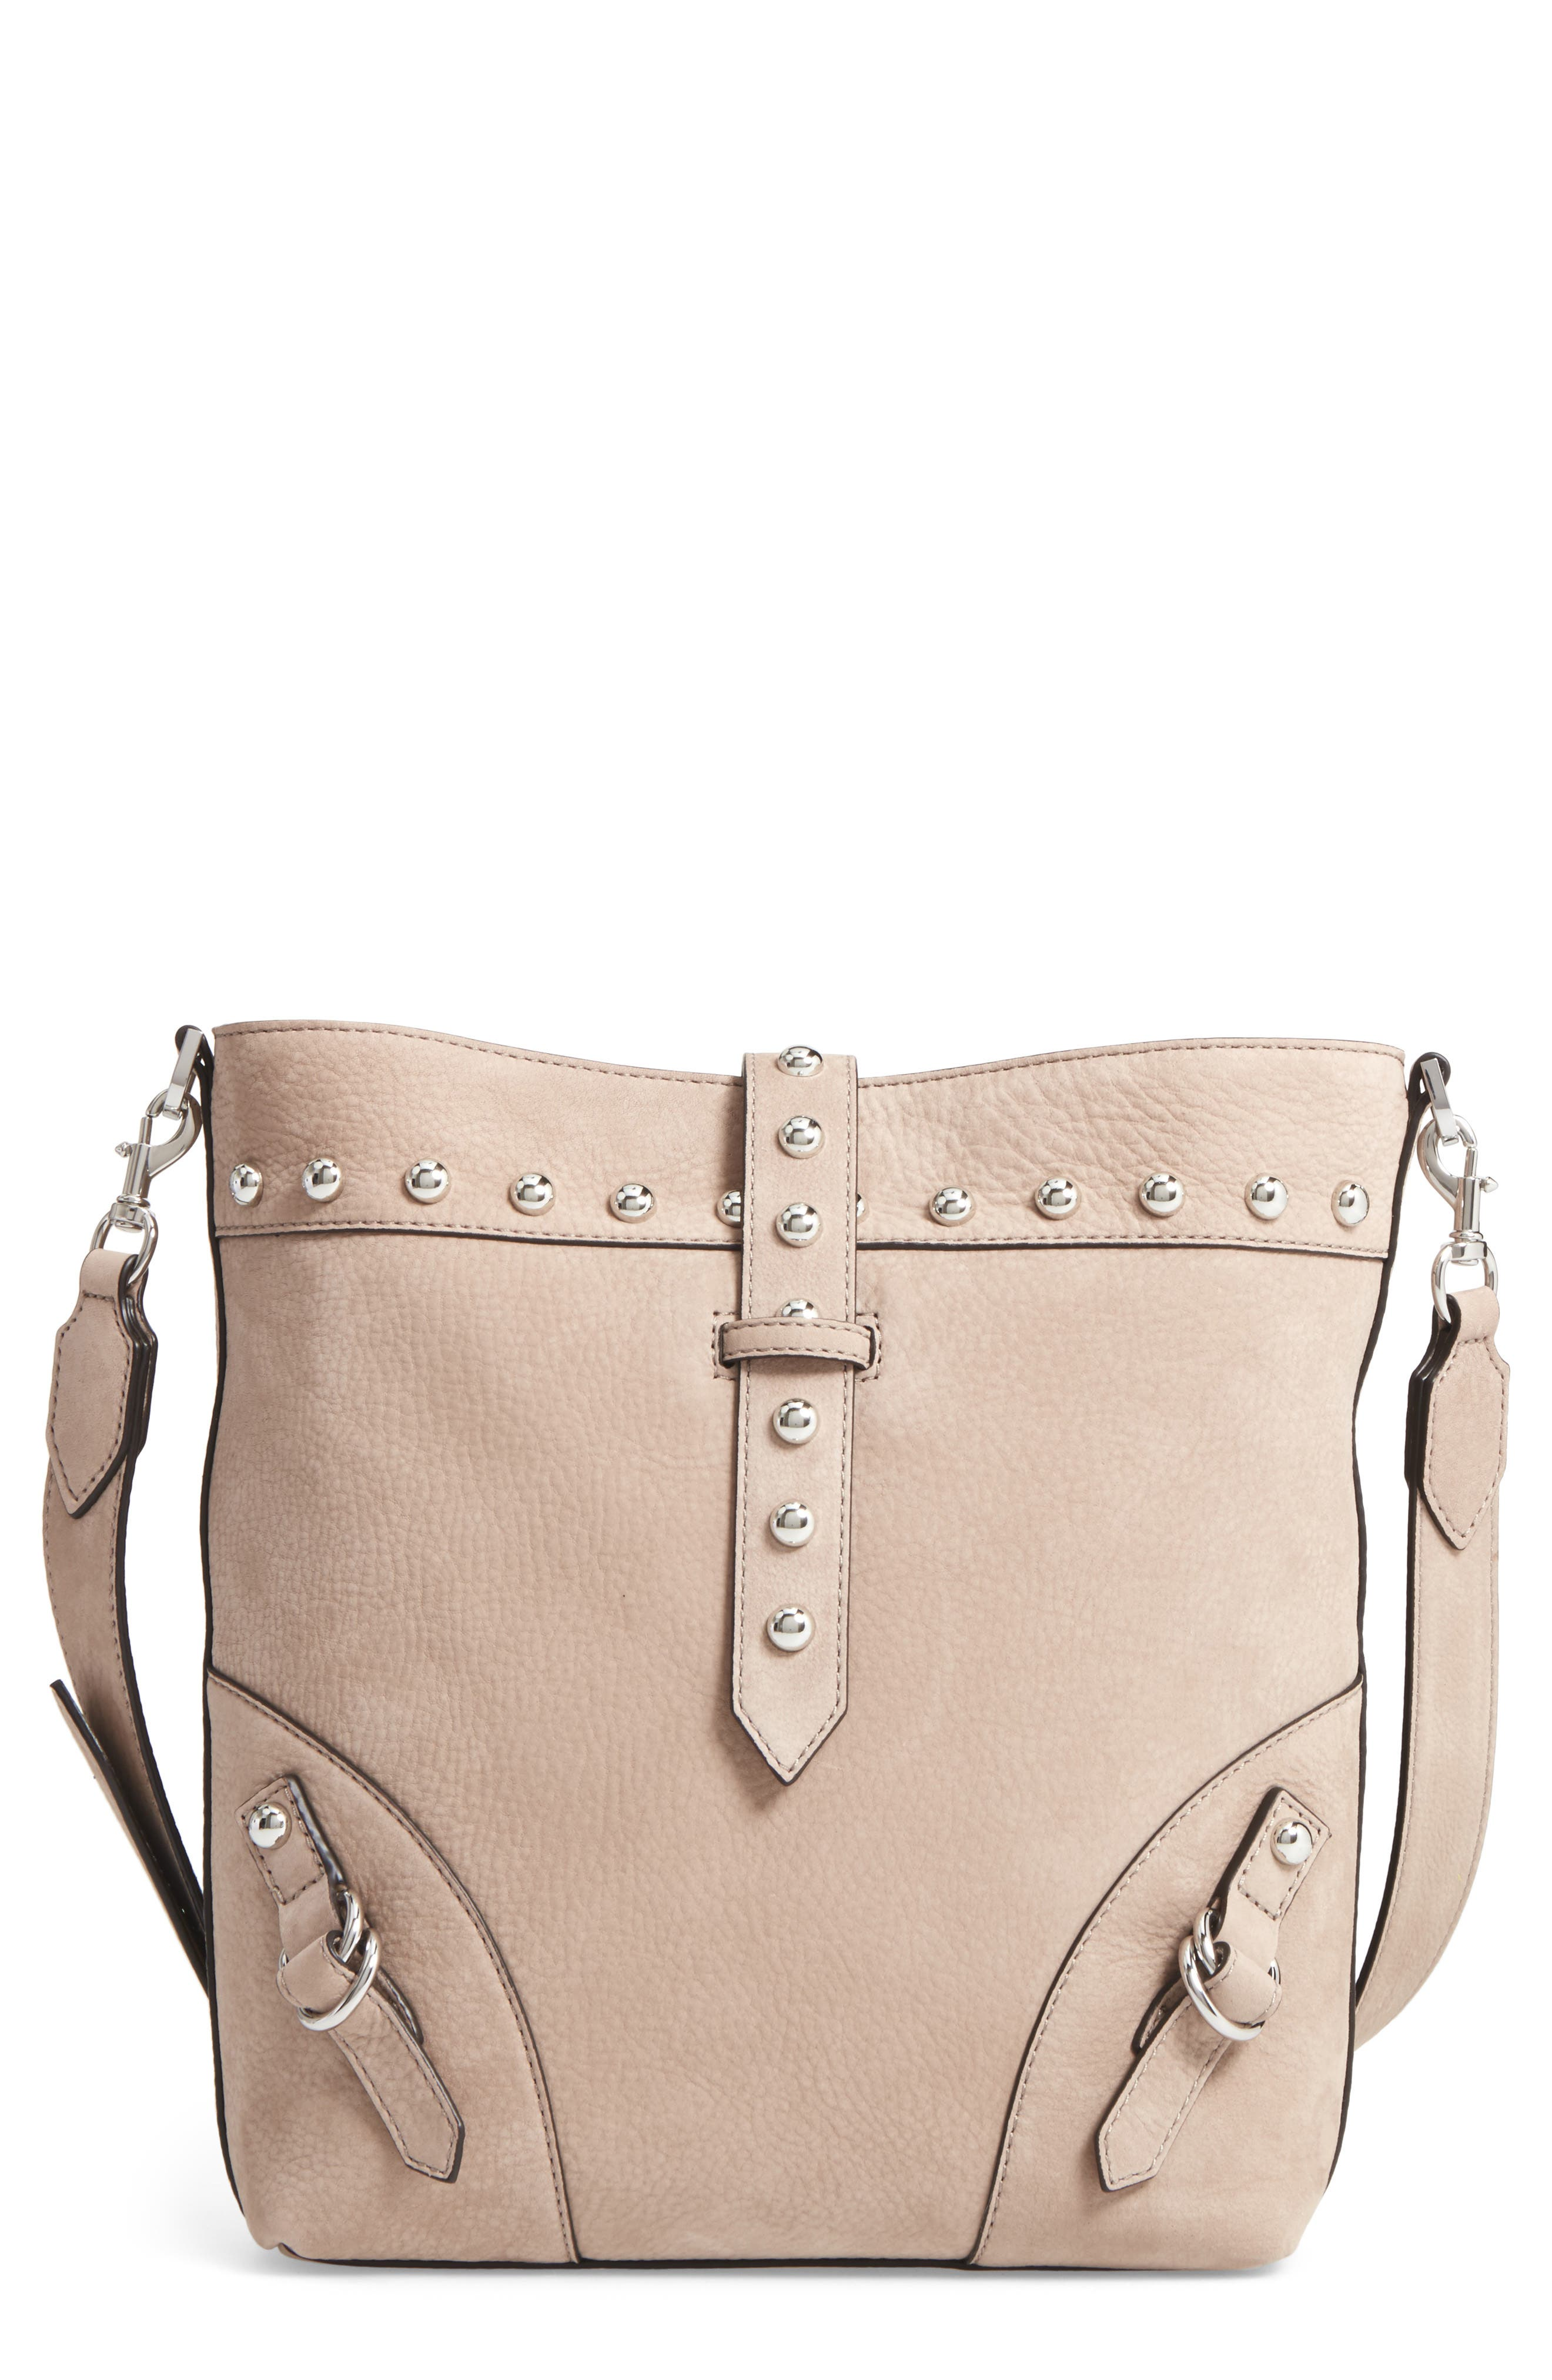 Rose Leather Bucket Bag,                             Main thumbnail 1, color,                             Sandstone